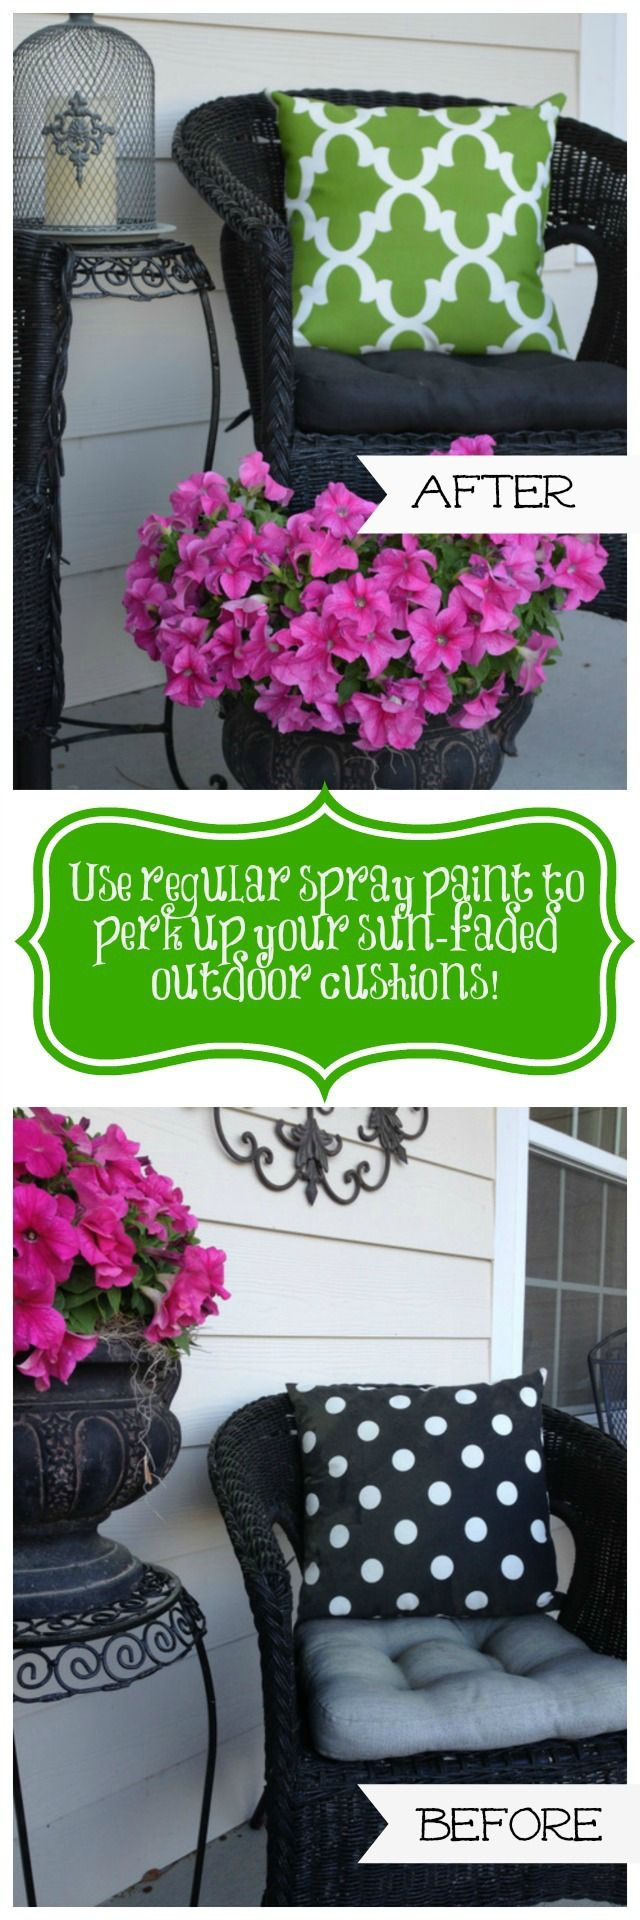 How to use regular spray paint to revitalize the fabric on your faded outdoor cushions and pillows--before and after!